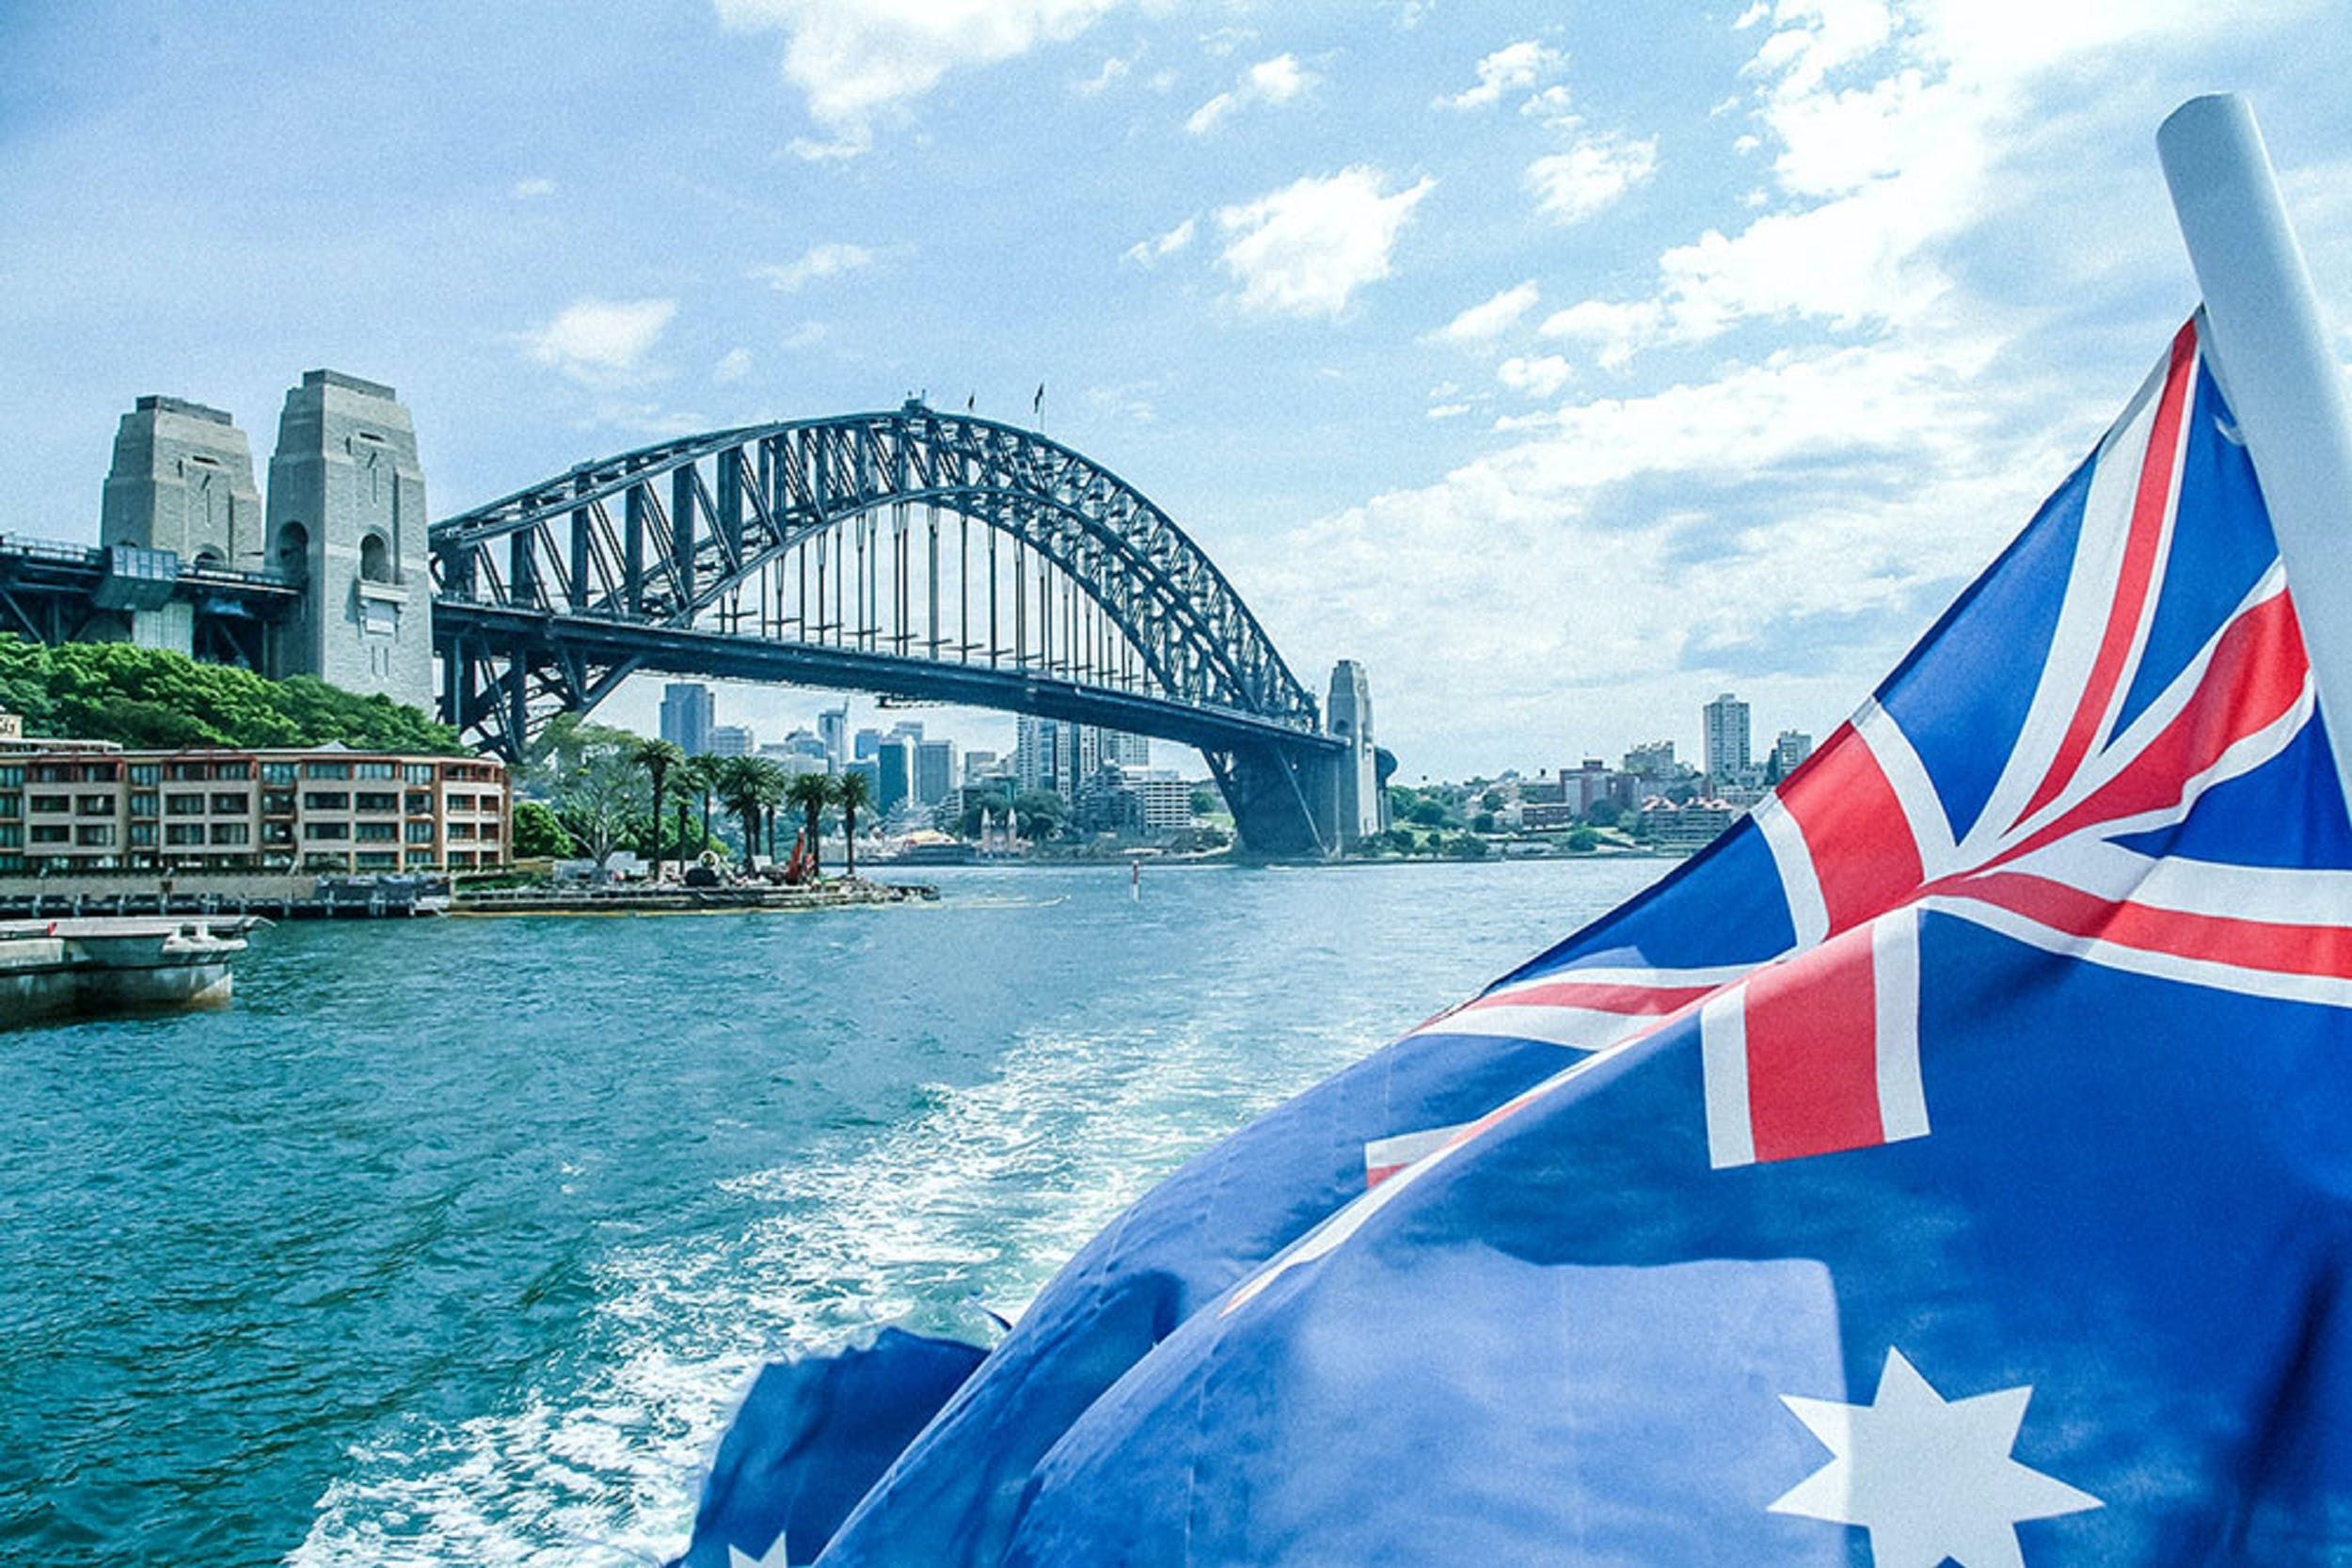 Australia Day Lunch and Dinner Cruises On Sydney Harbour with Sydney Showboats - Hotel Accommodation